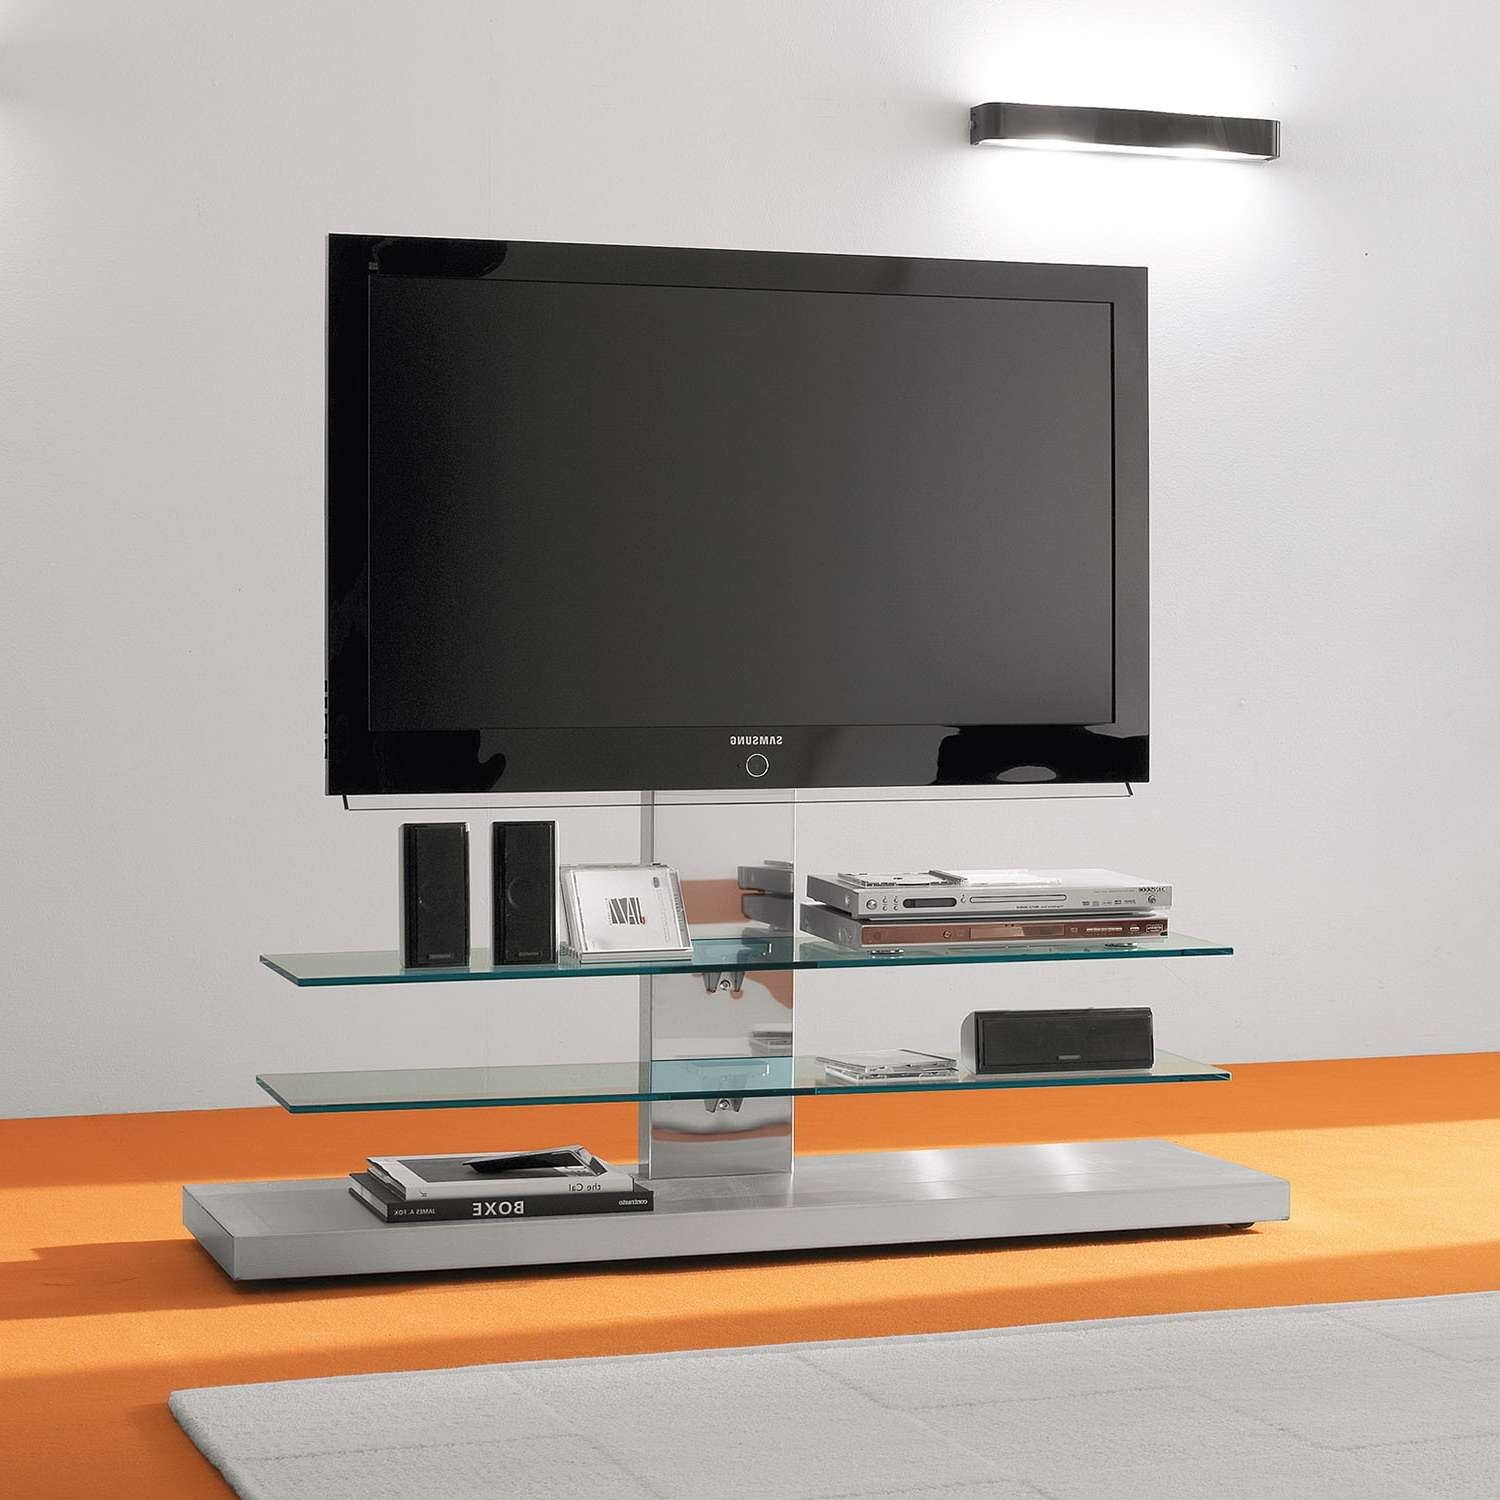 Panorama Adjustable Tv Stand With Casters – Arredaclick With Regard To Panorama Tv Stands (View 14 of 20)